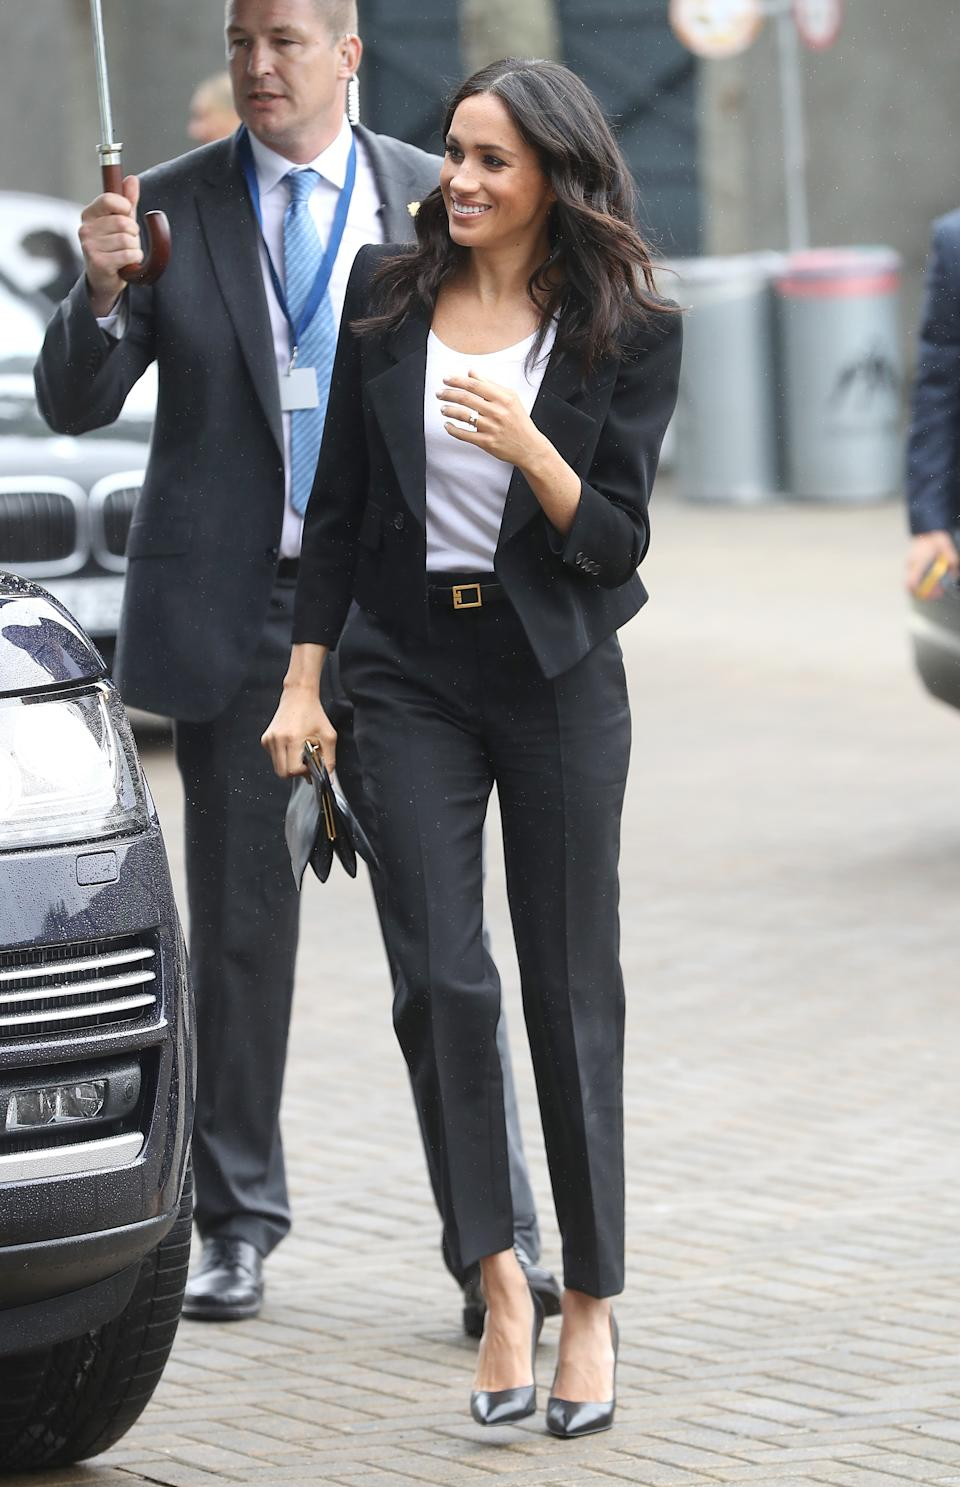 Wearing a Givenchy suit. (Getty Images)